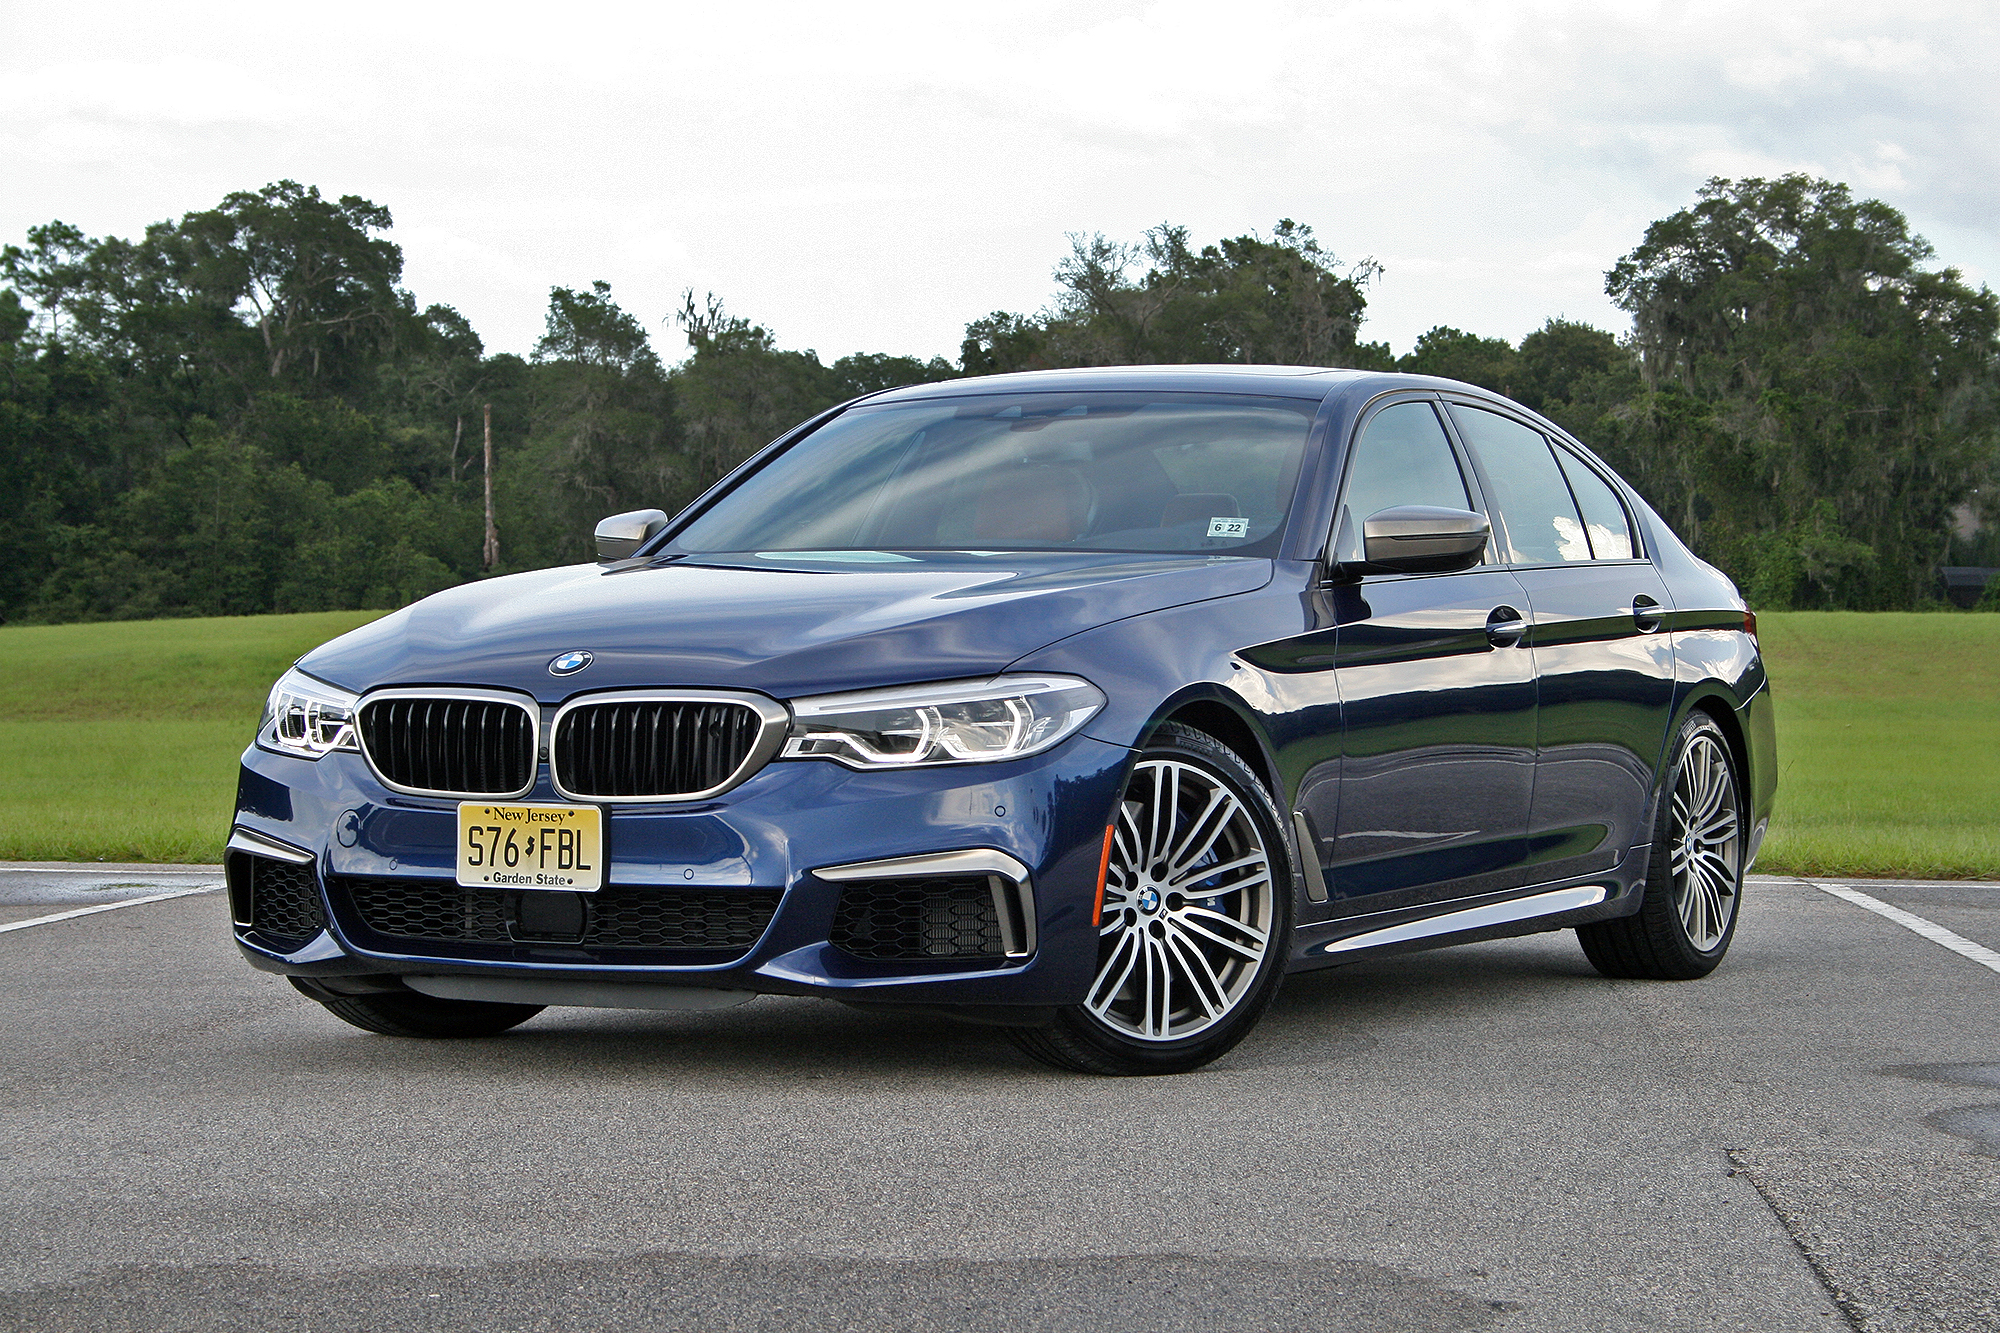 The Coolest Feature Of 2018 Bmw M550i Top Speed Motor Blower X5